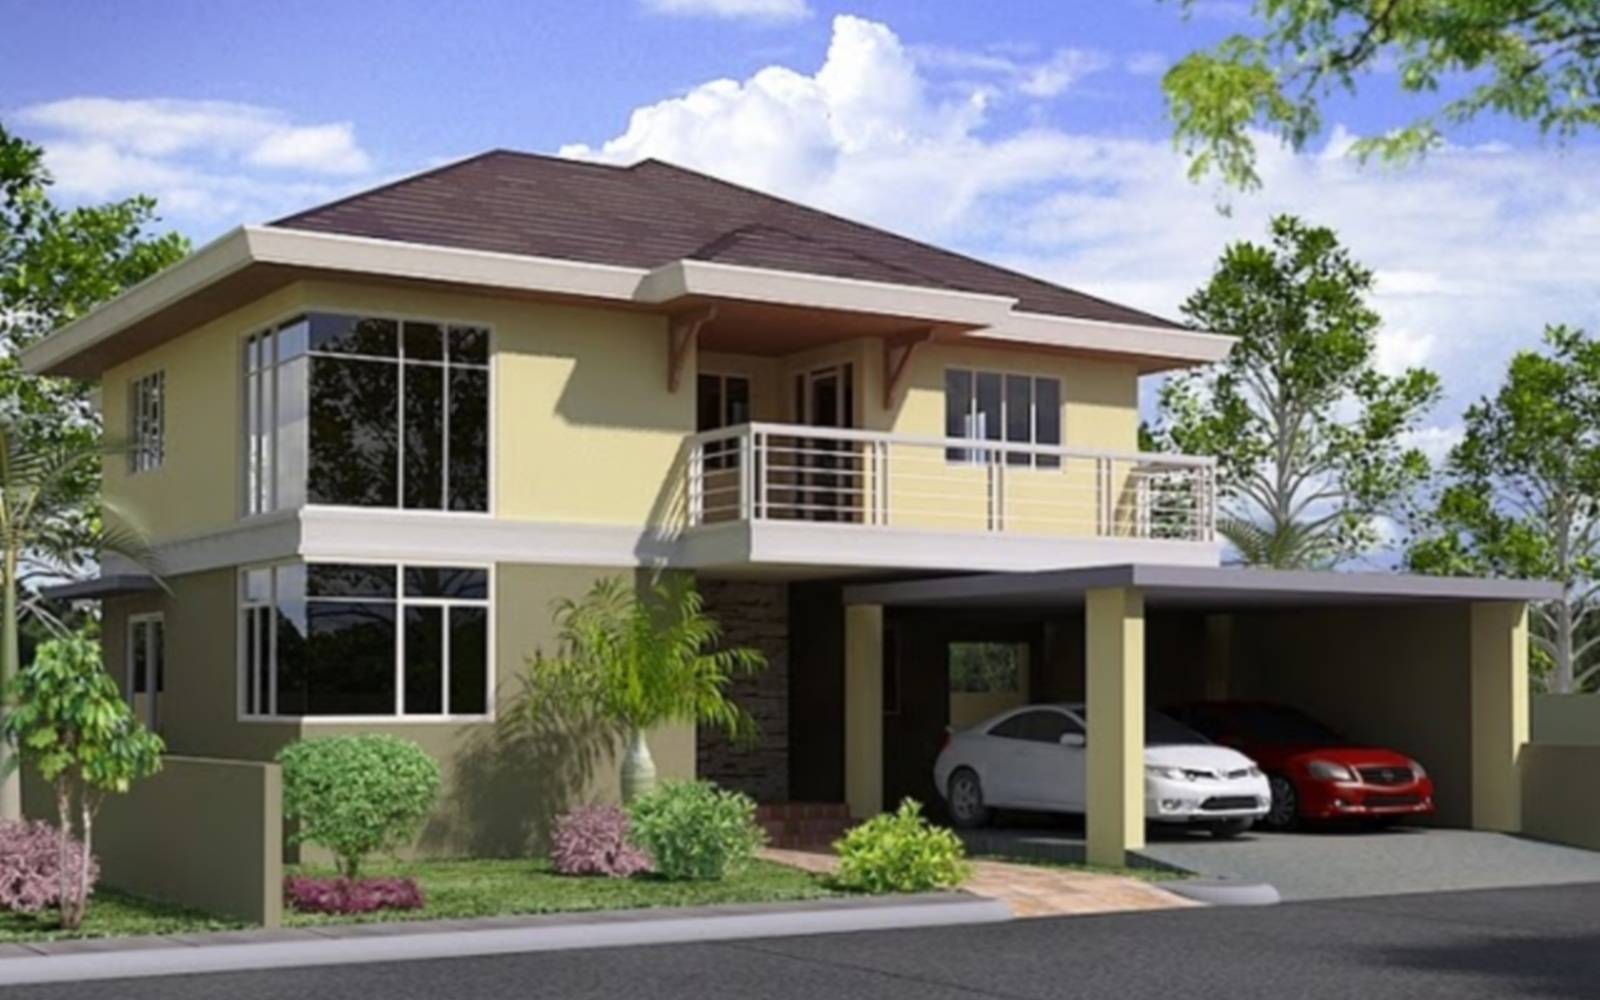 Kk two storey house plan philippines photoshop hd for 2 storey house plans